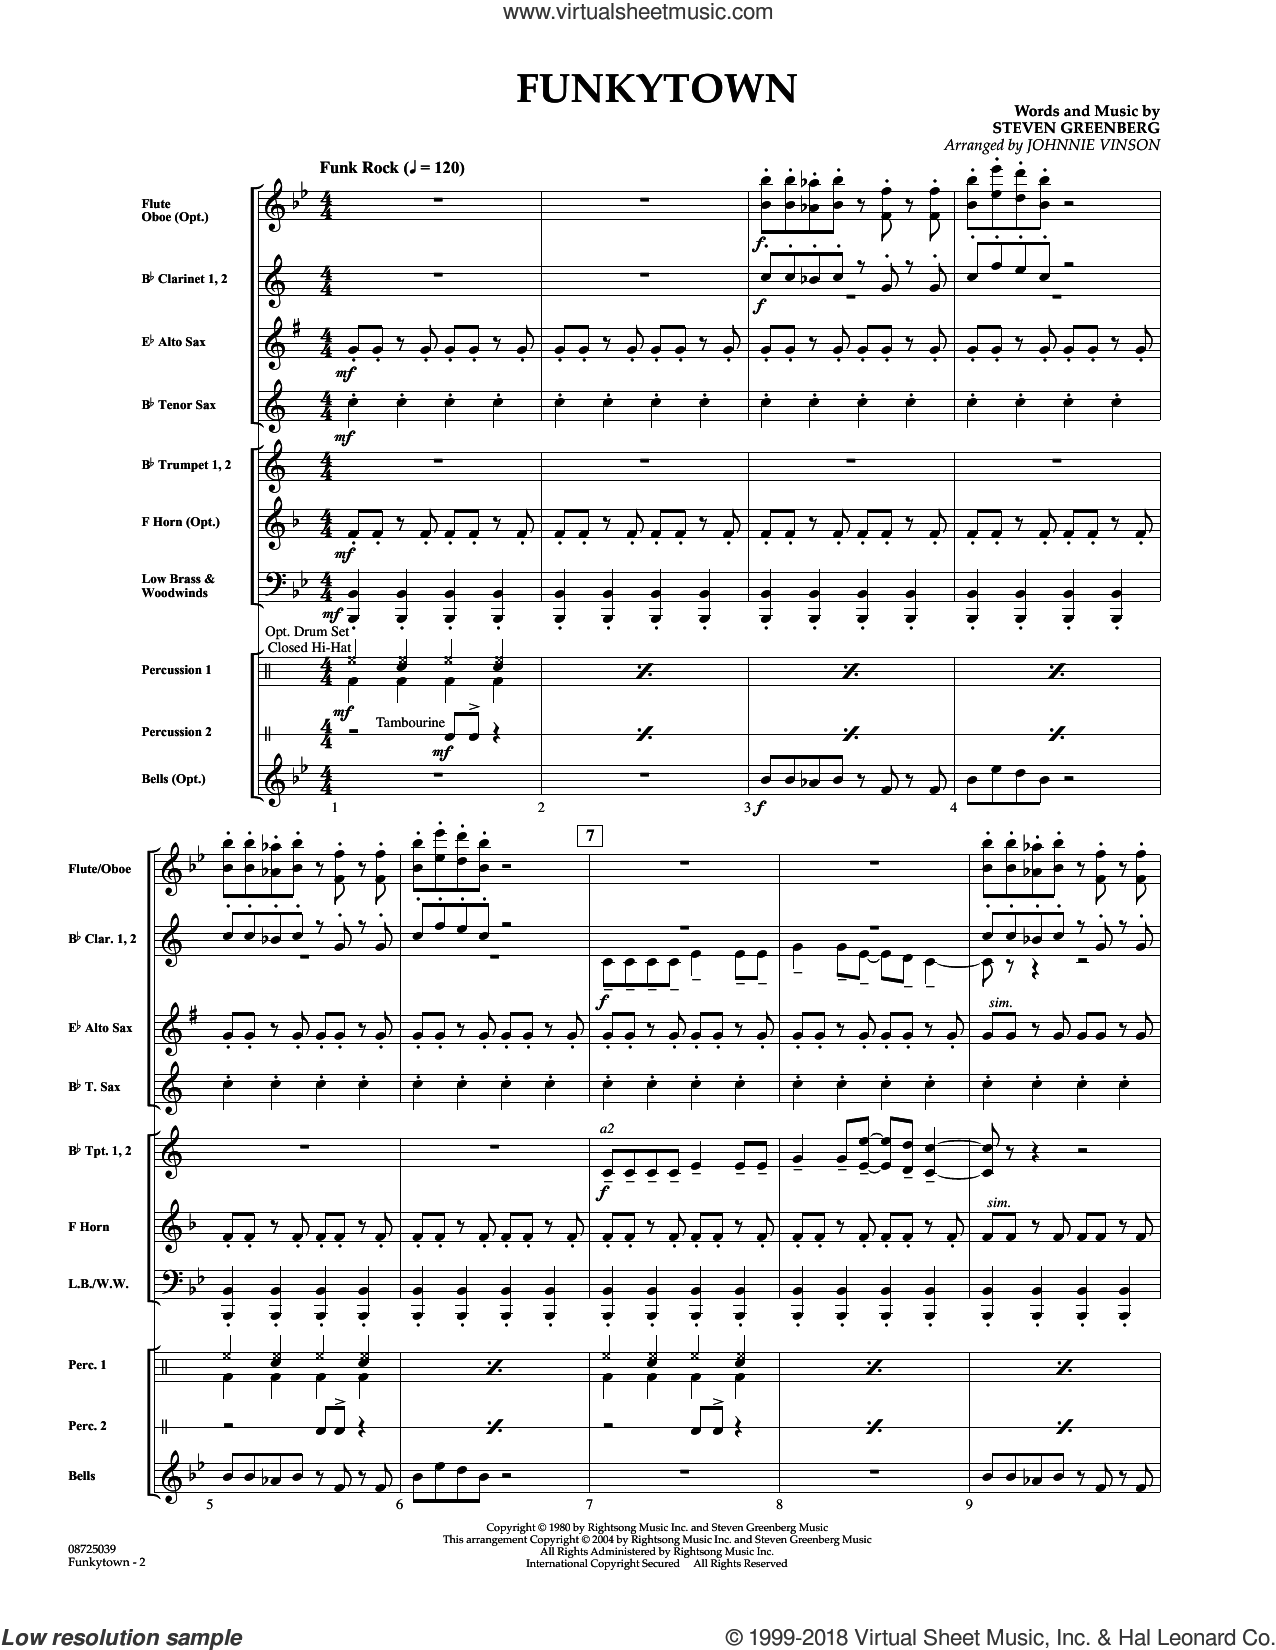 Funkytown (COMPLETE) sheet music for concert band by Johnnie Vinson, Alvin And The Chipmunks, Lipps Inc. and Steven Greenberg, intermediate. Score Image Preview.